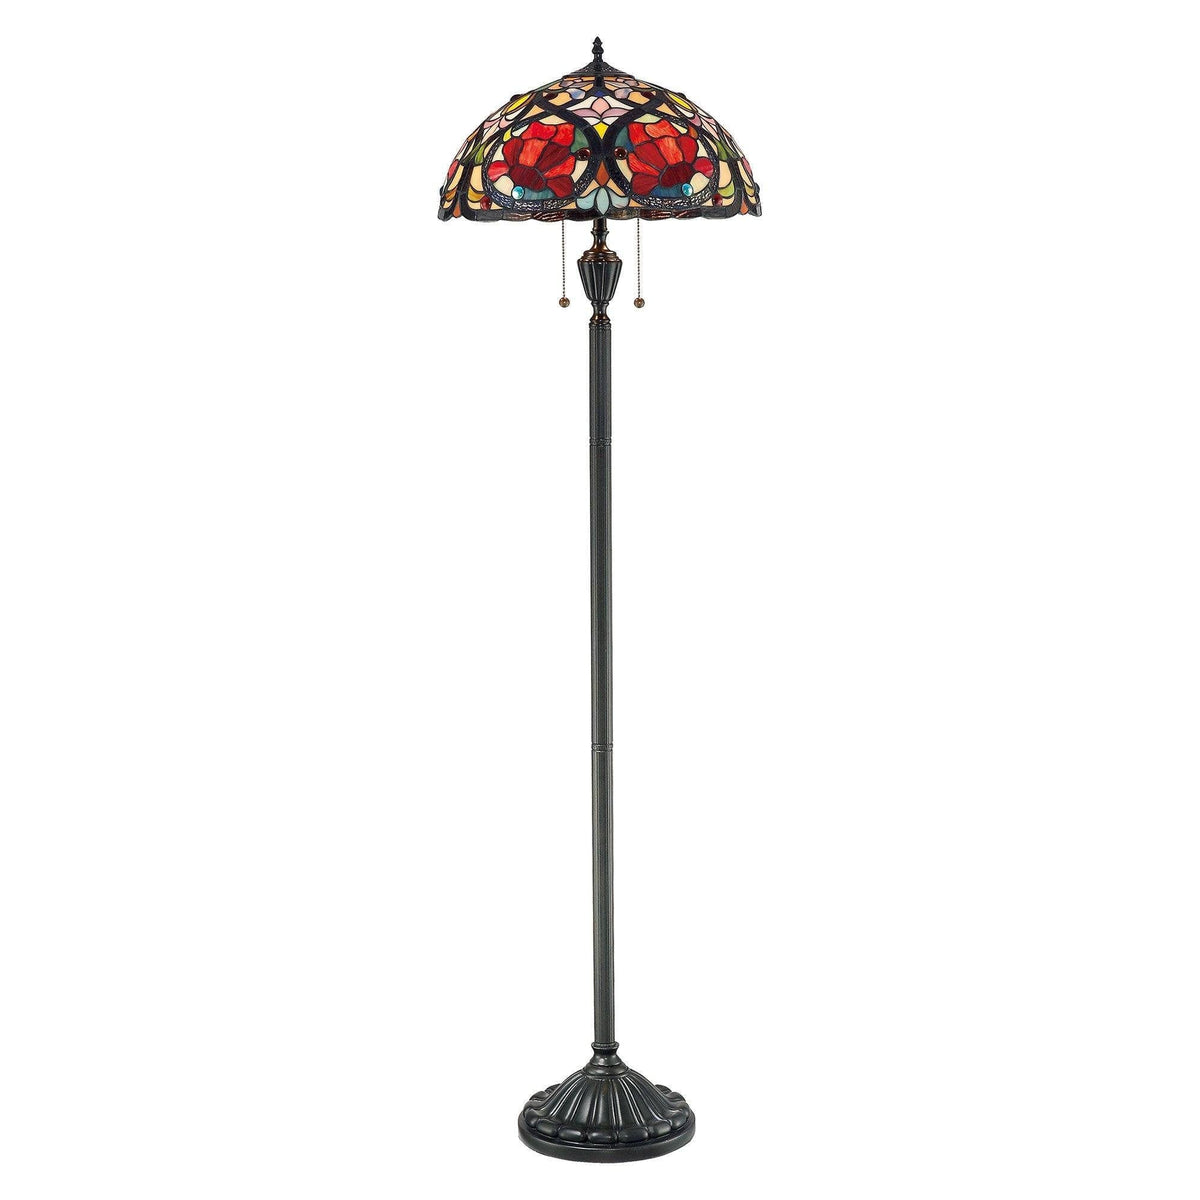 Tiffany Floor Lamps - Quoizel Tiffany Larissa Floor Lamp QZ/LARISSA/FL